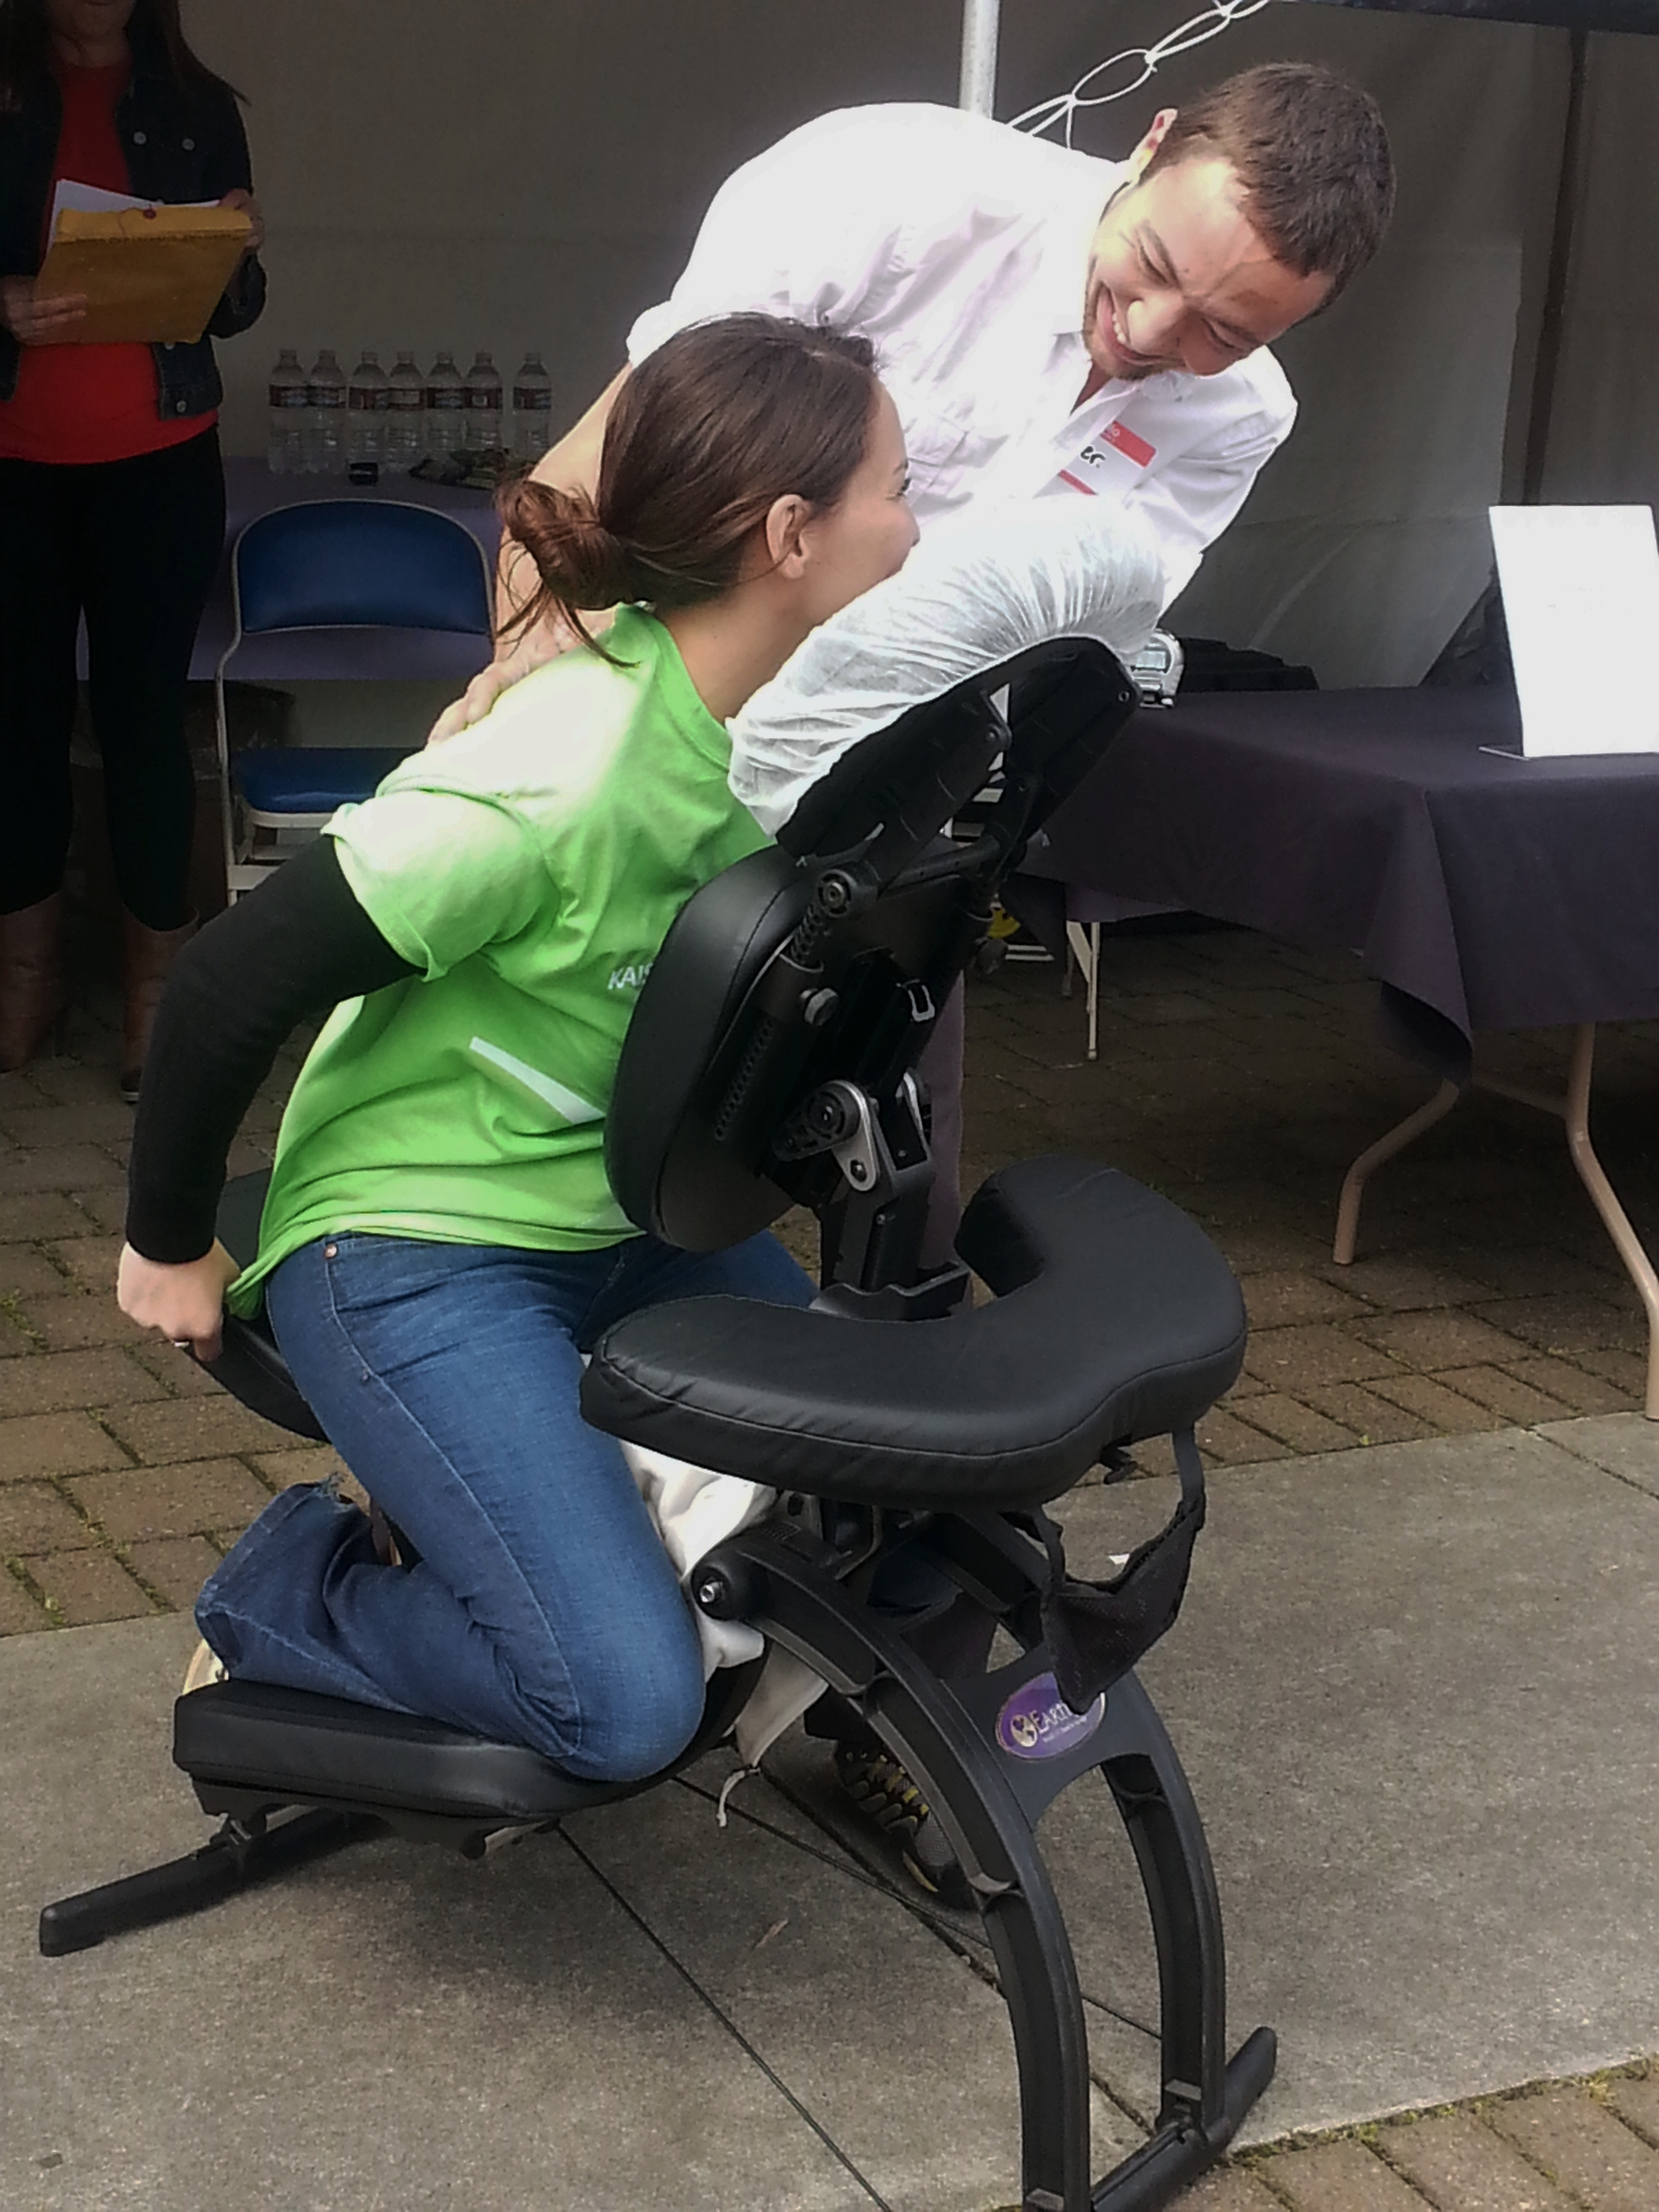 Schedule Massage in your event - Create a memorable experience, keep the energy up and make your event POP!